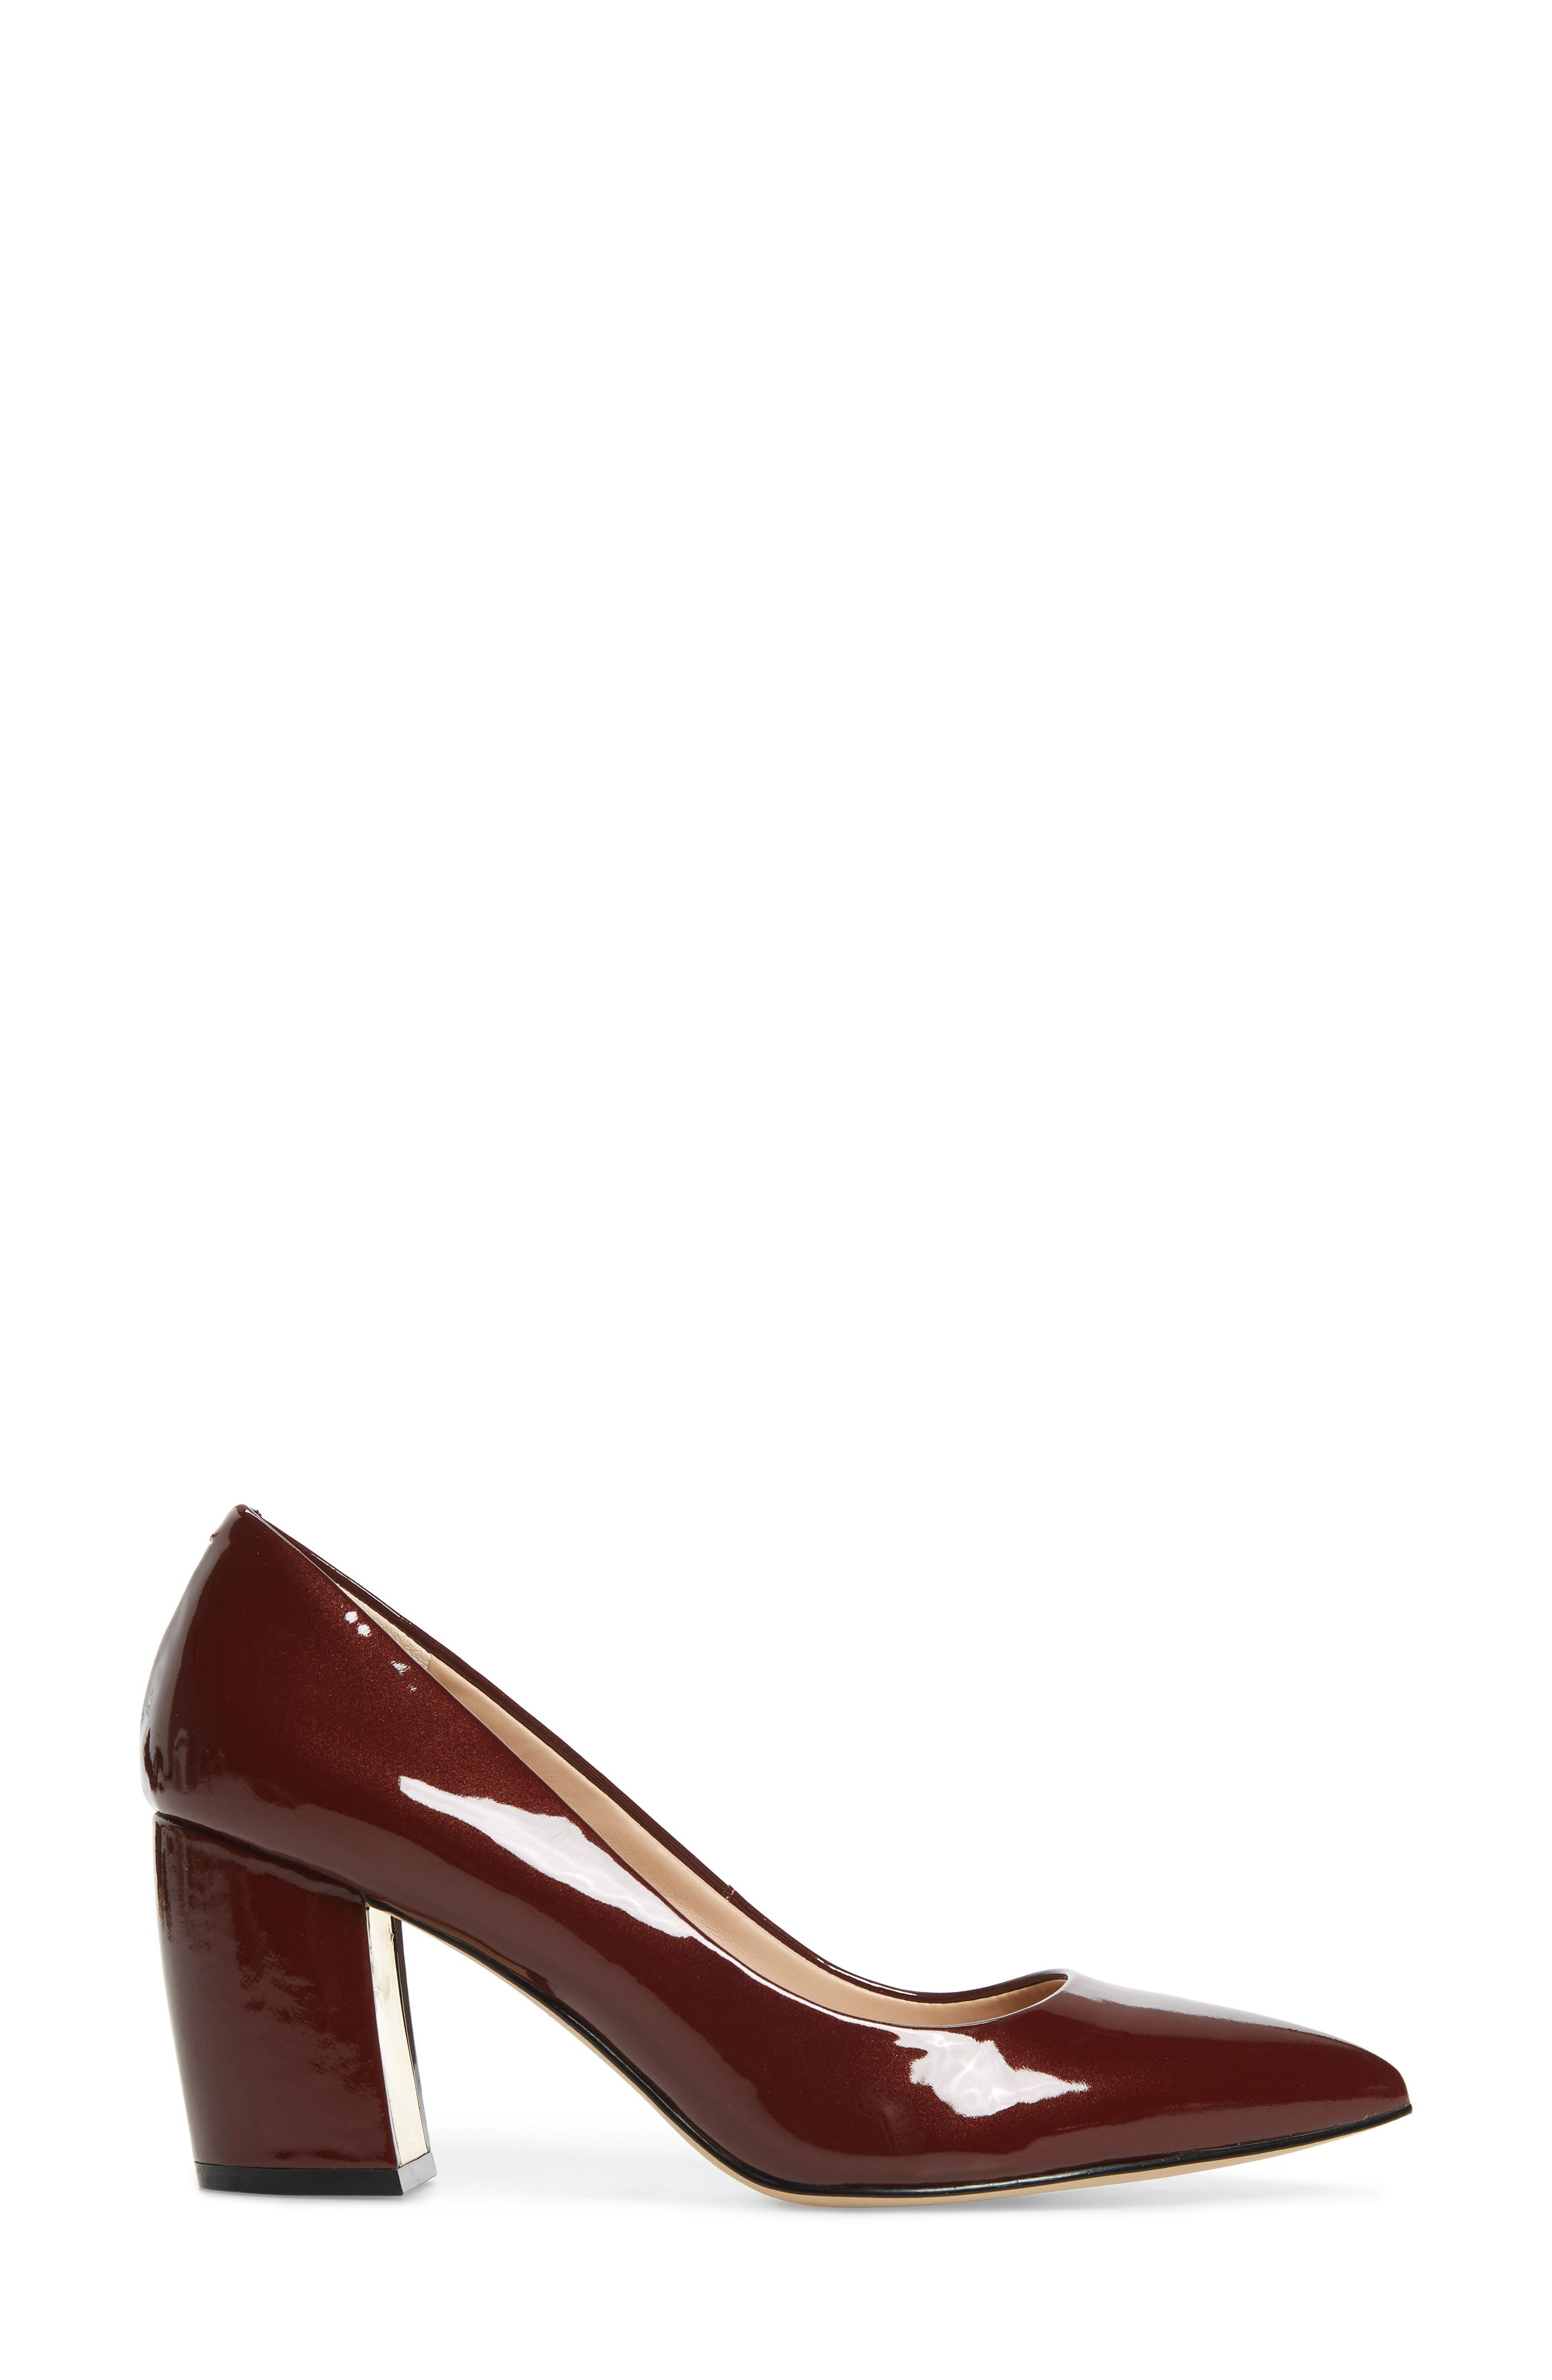 Addie Pump,                             Alternate thumbnail 3, color,                             BURGUNDY PATENT LEATHER